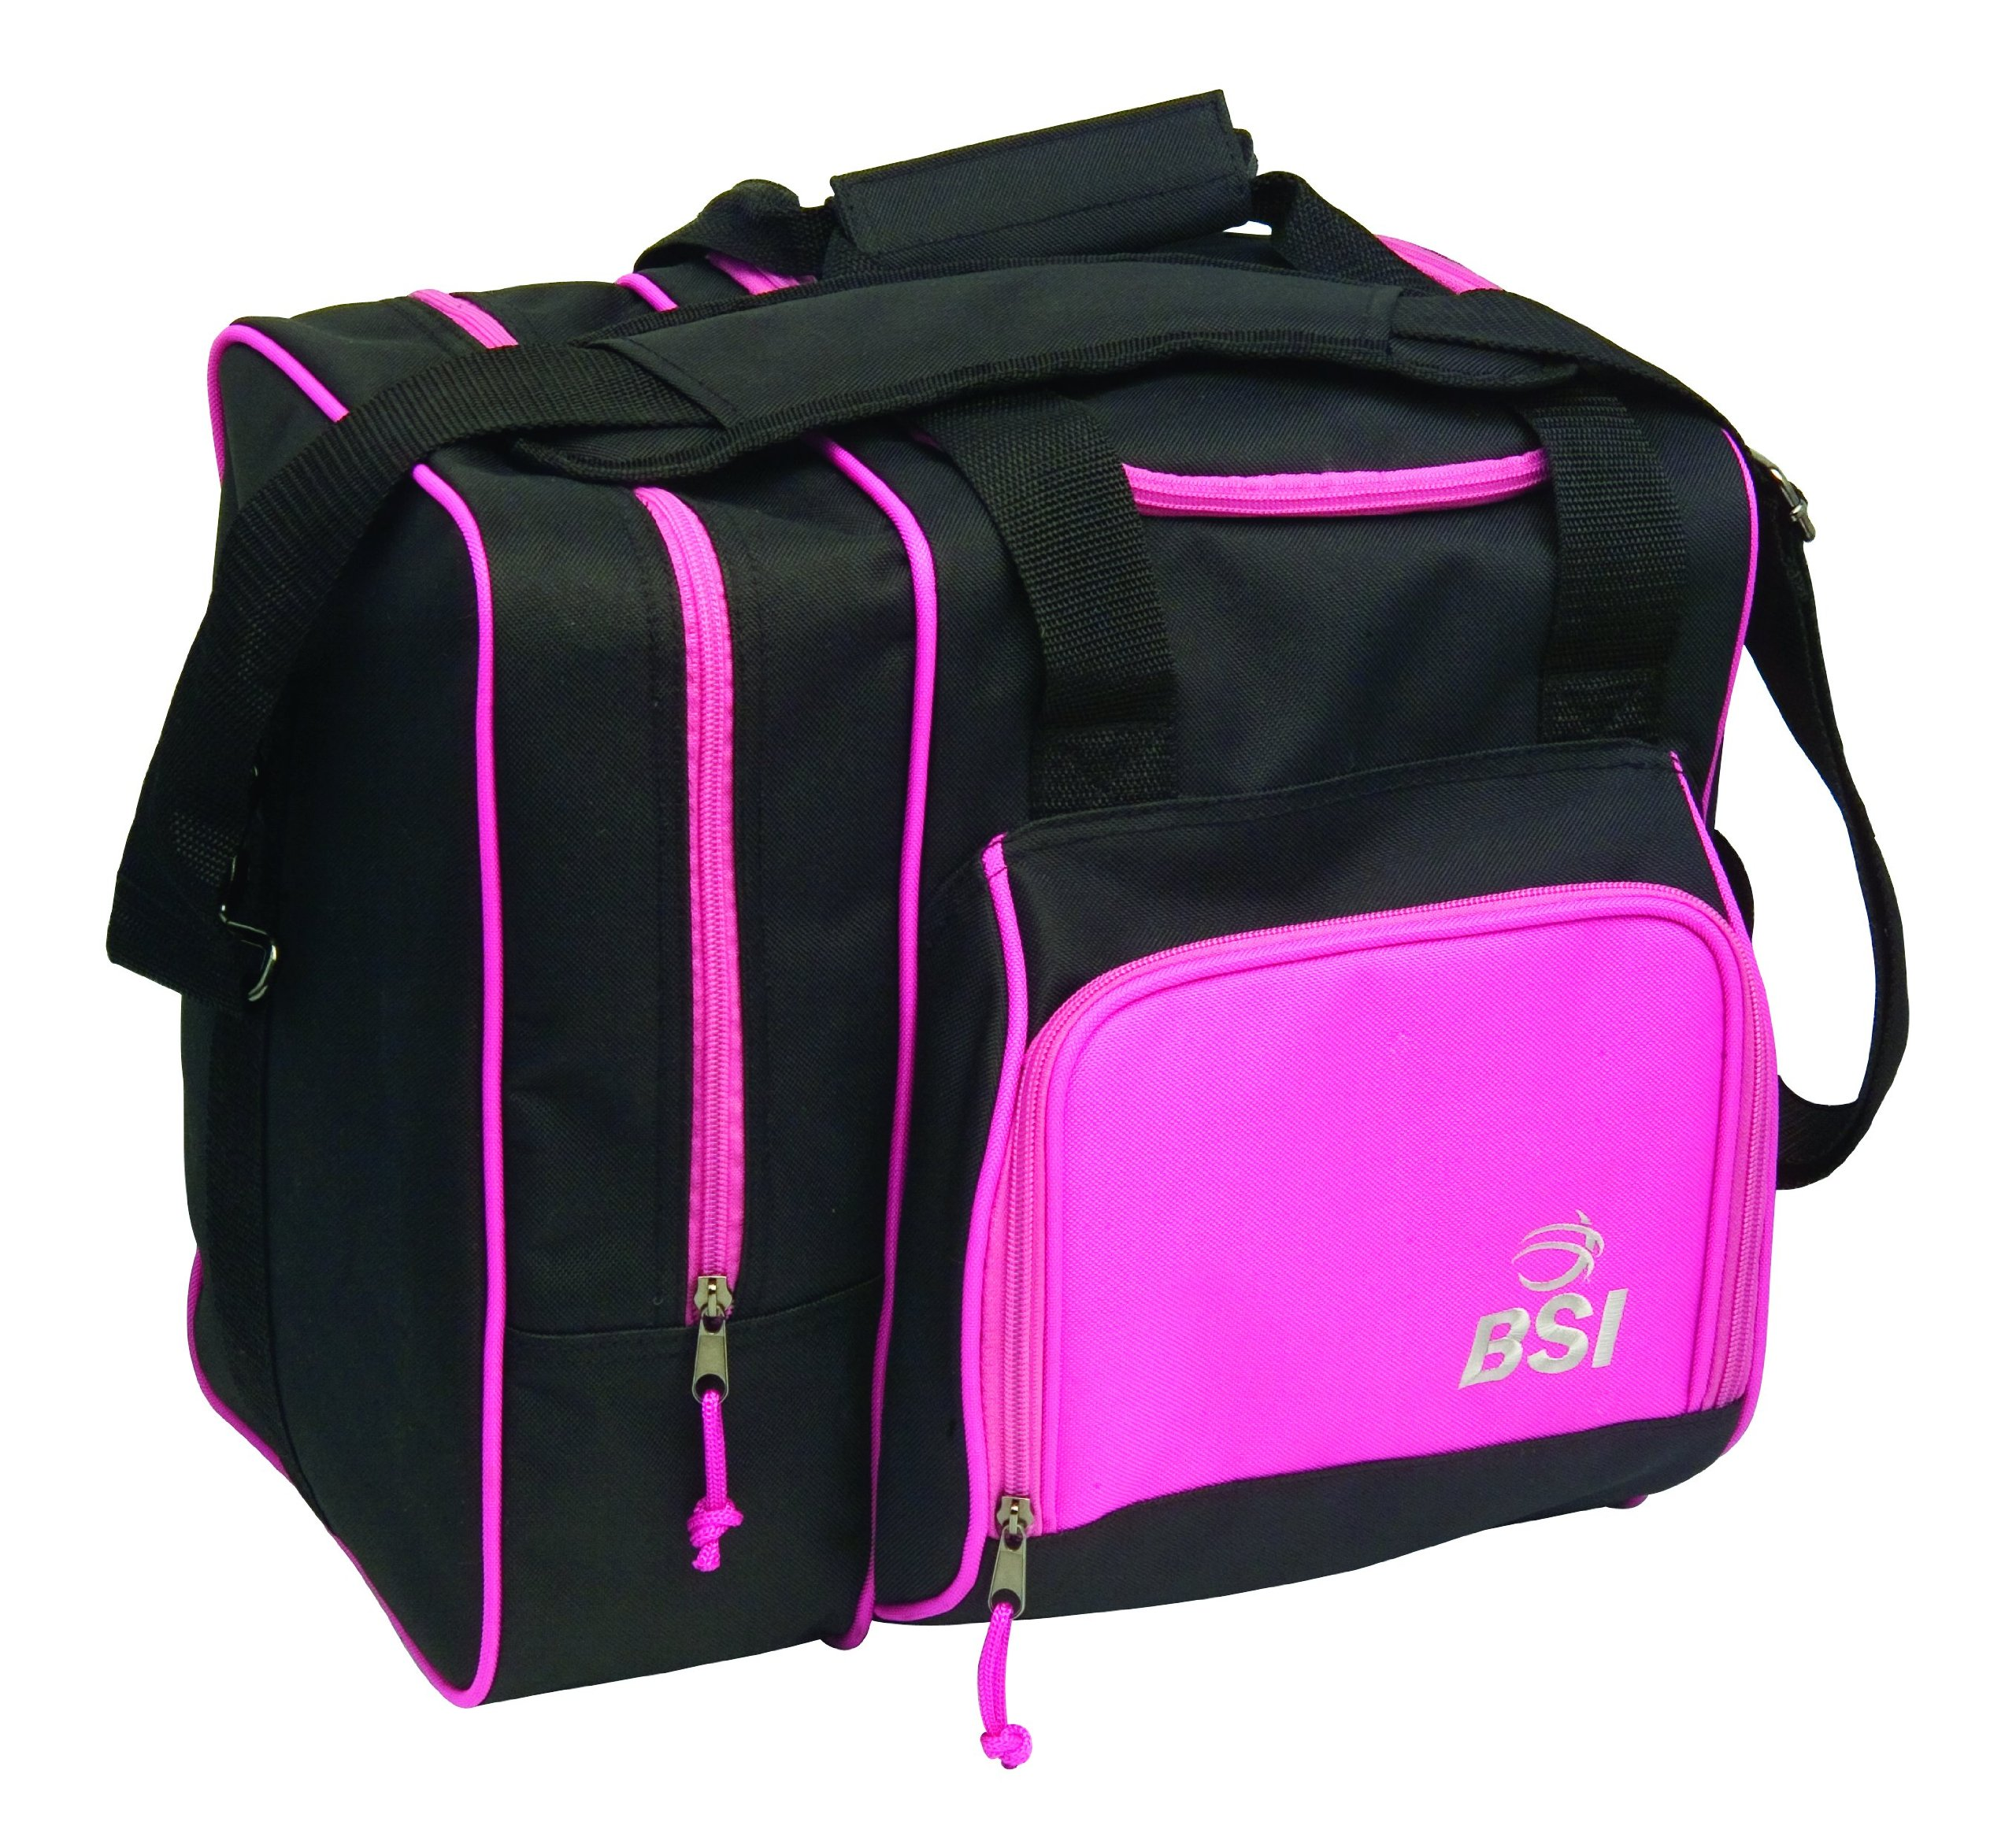 BSI Deluxe Single Ball Tote Bag (Black/Pink) by BSI